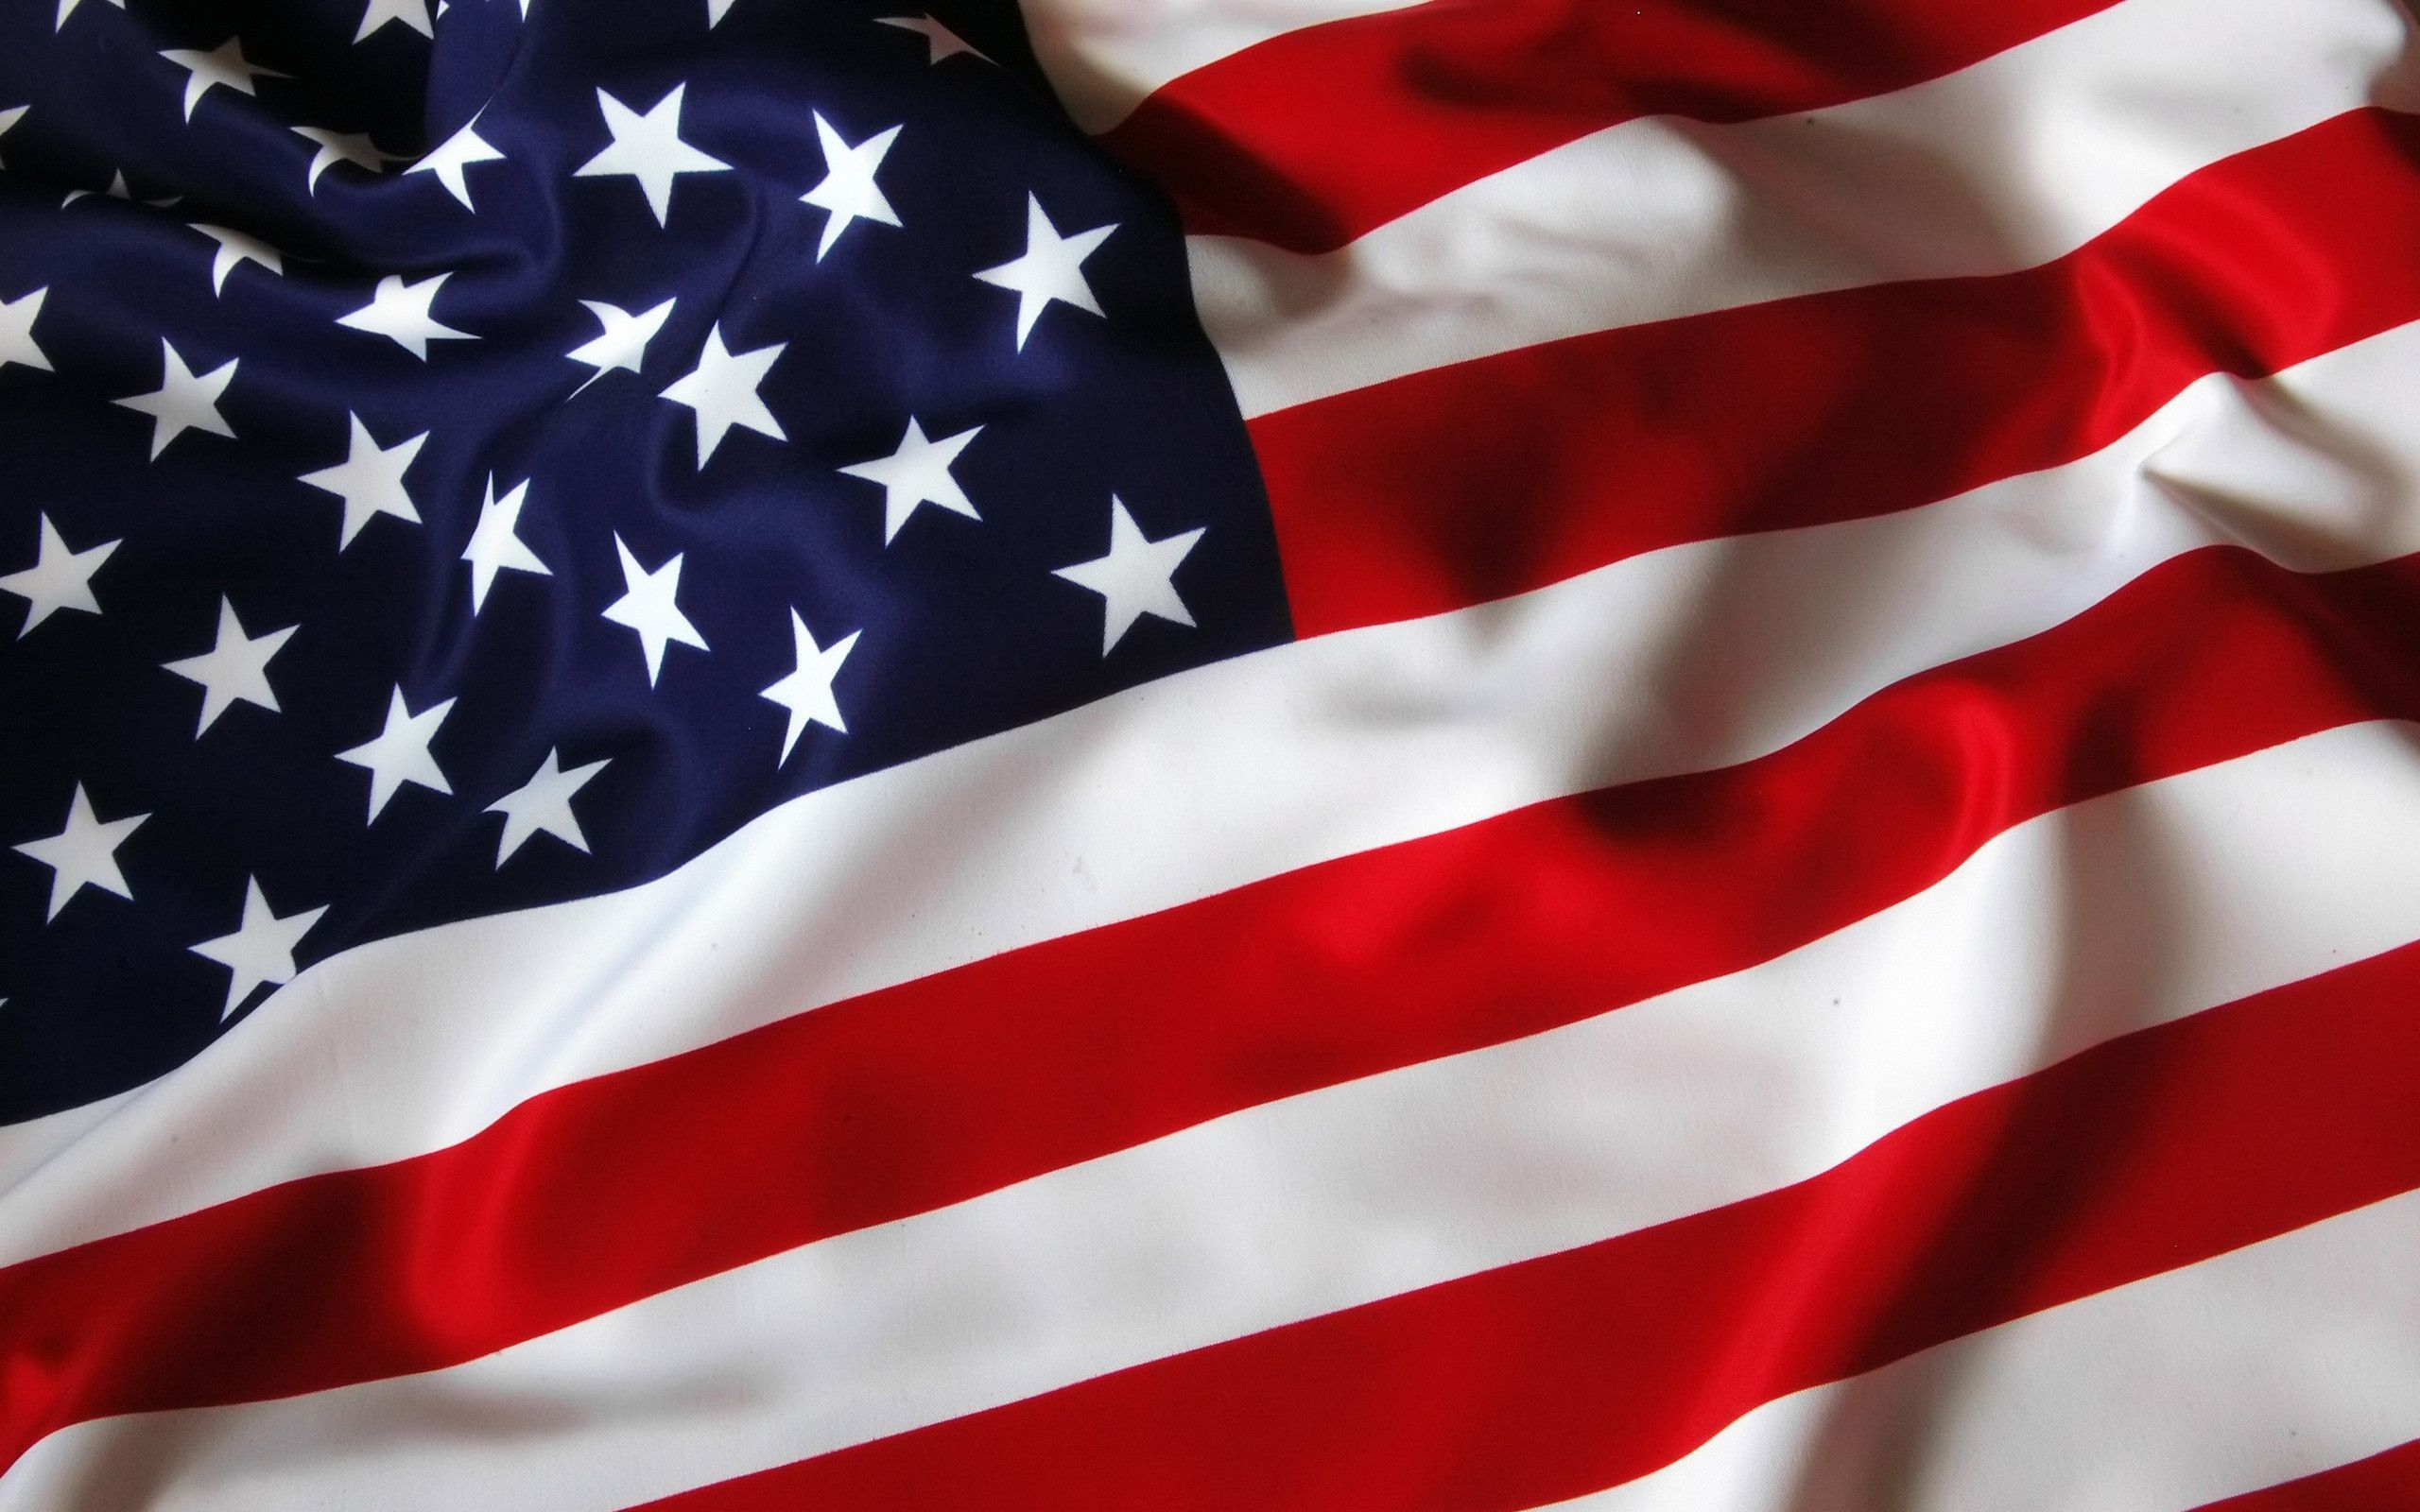 American Flag Hd Wallpapers Top Free American Flag Hd Backgrounds Wallpaperaccess